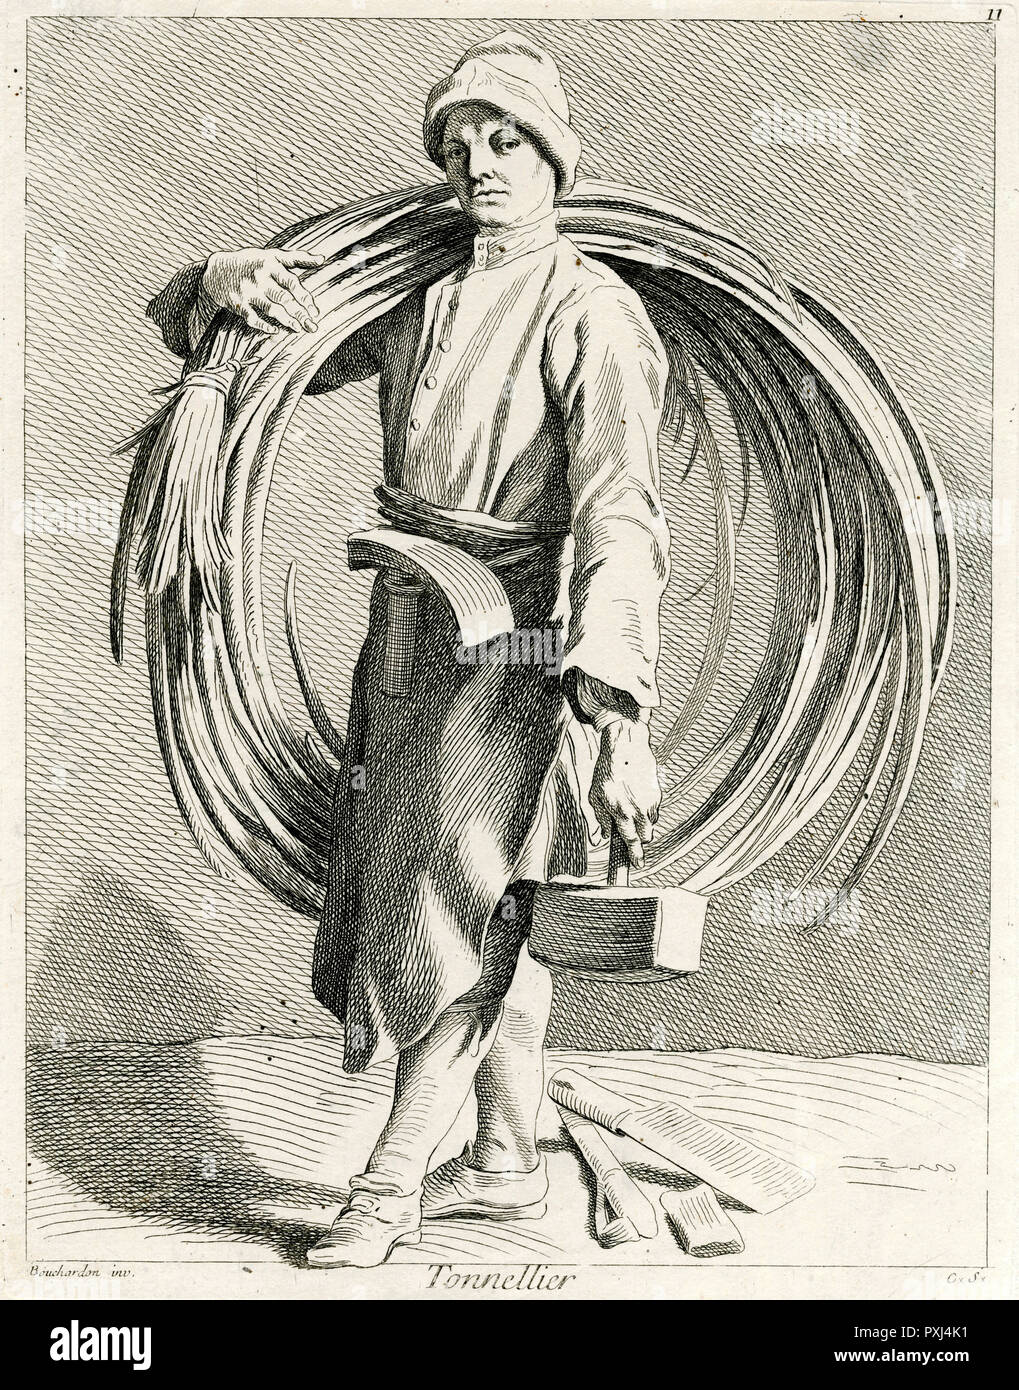 A French TONNELLIER - a barrel-maker       Date: circa 1740 - Stock Image